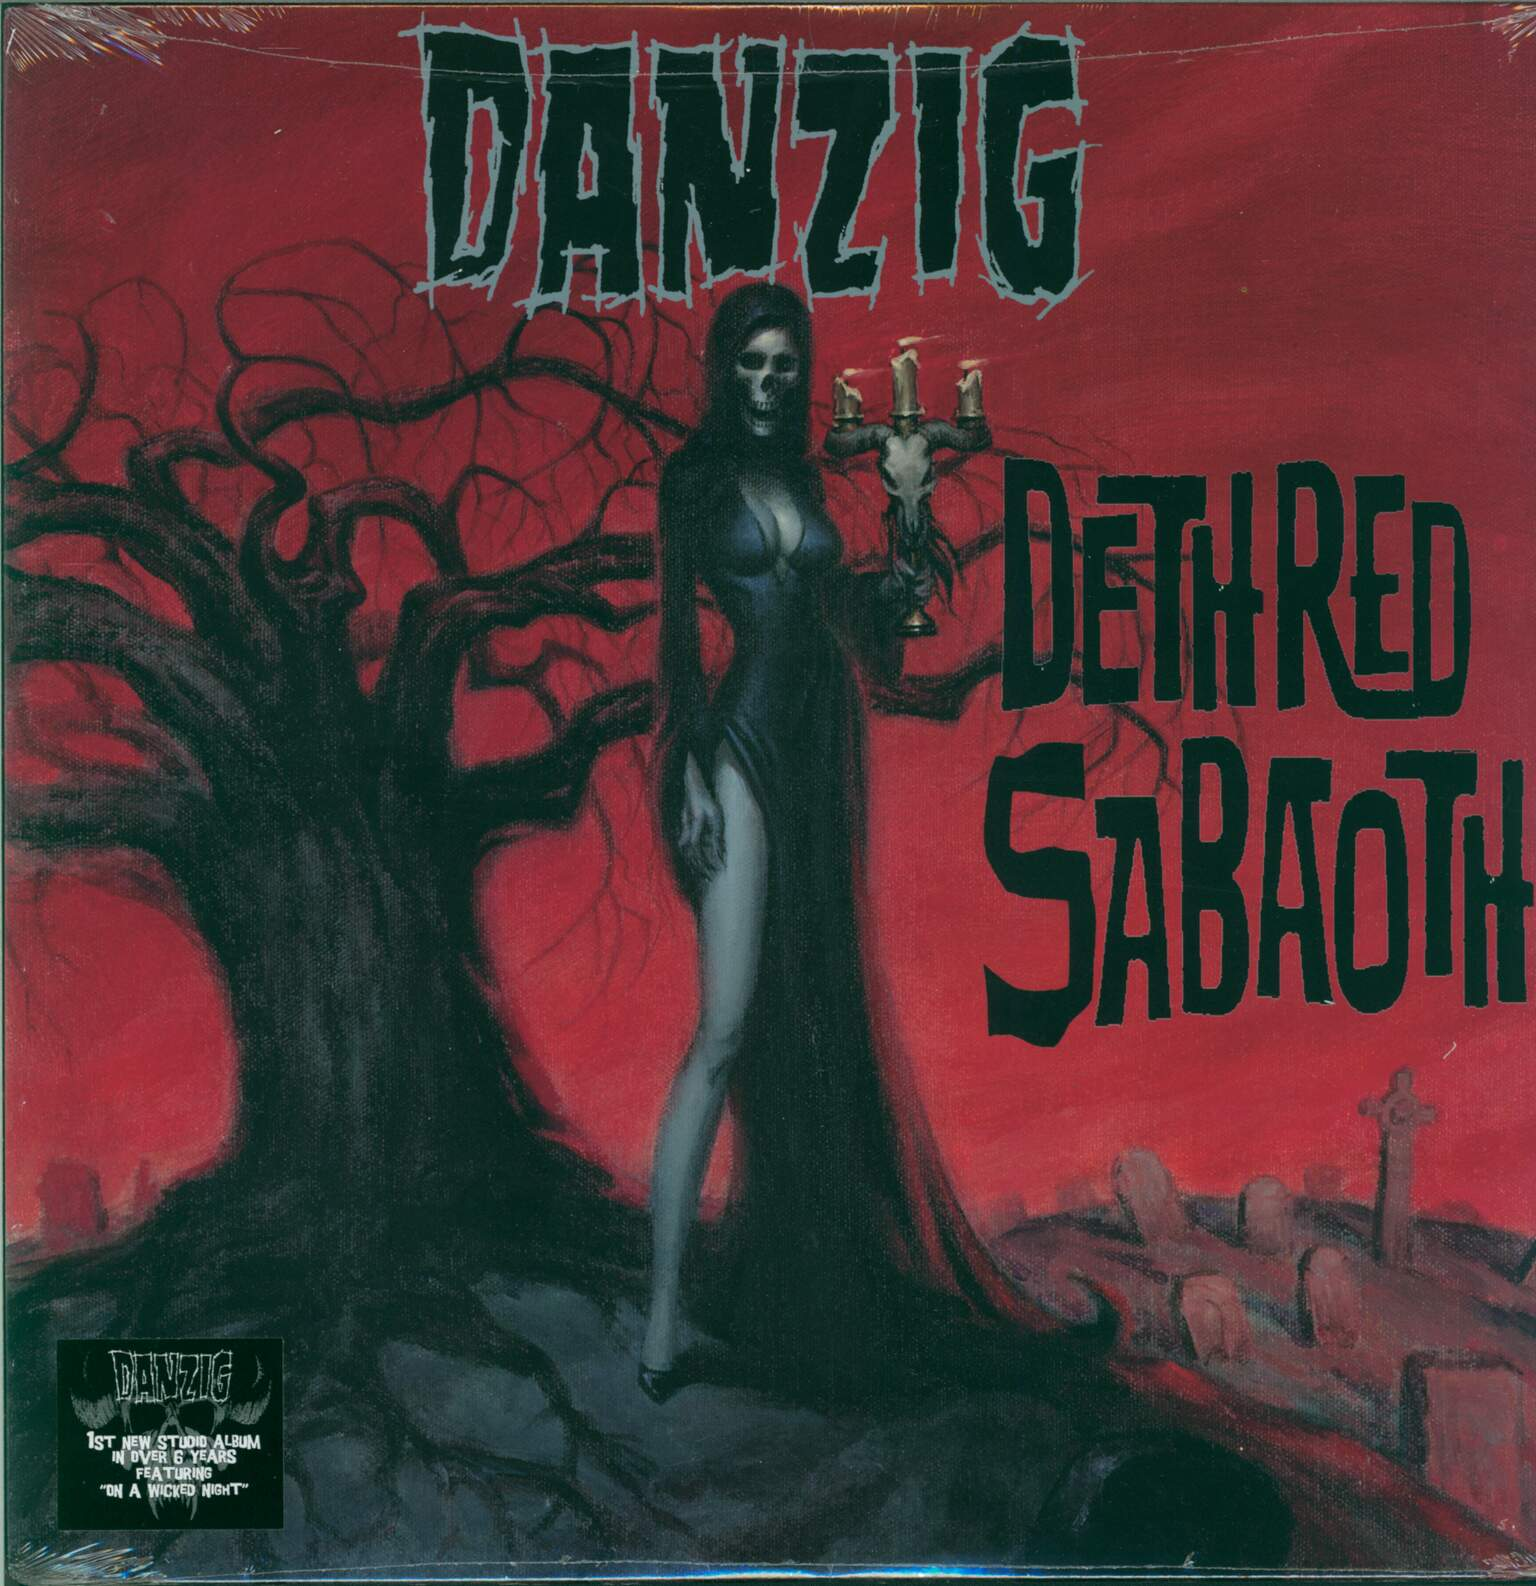 Danzig: Deth Red Sabaoth, 1×LP (Vinyl)